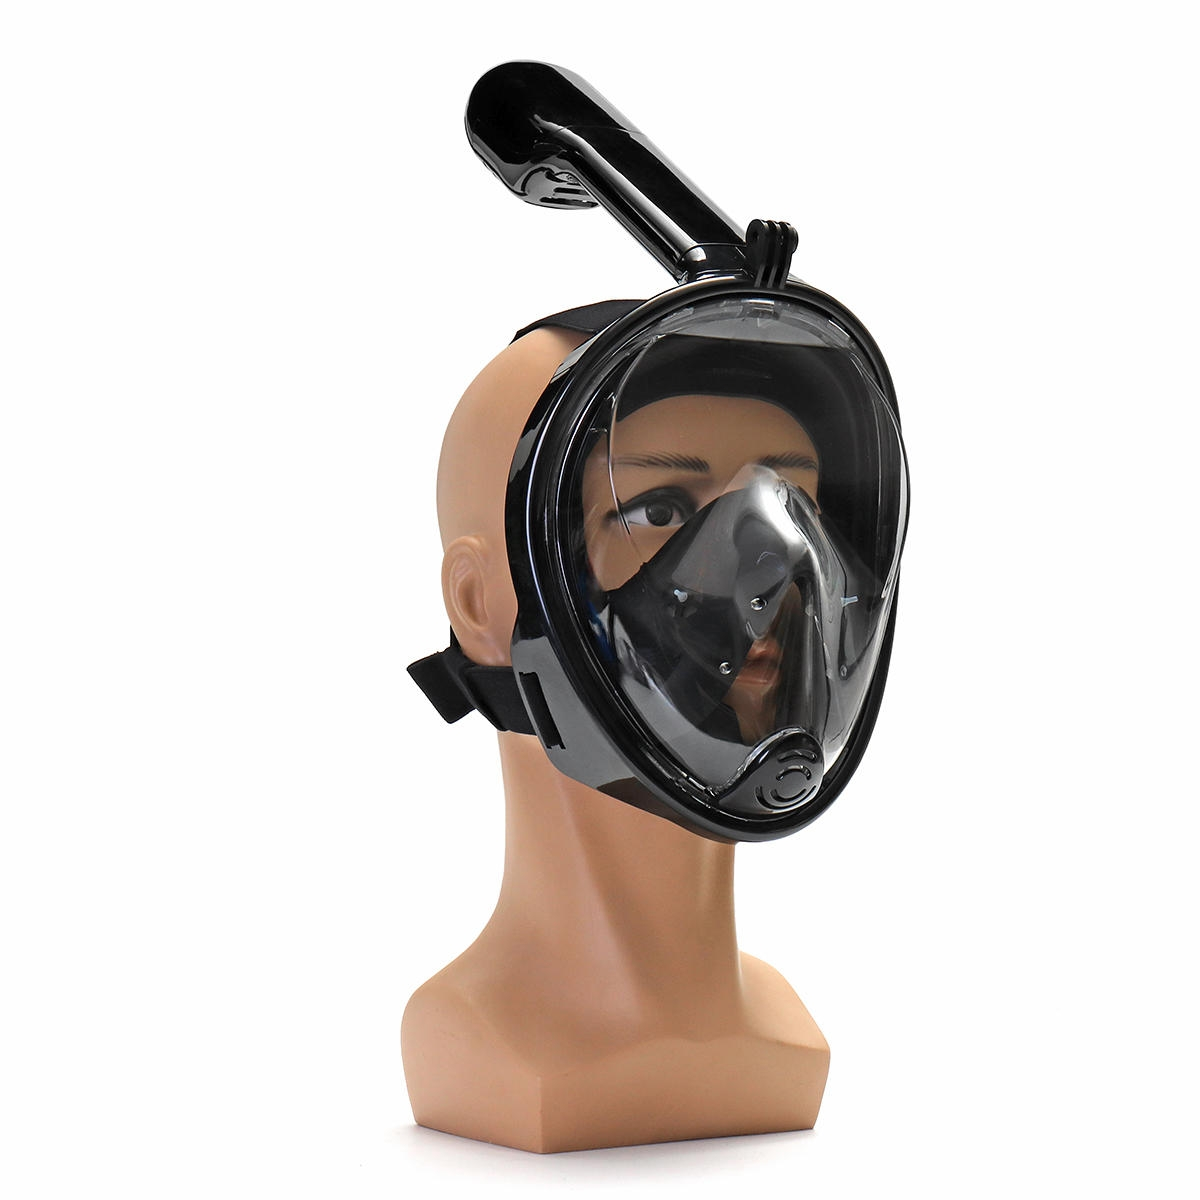 180 ° View Area Full Dry Snorkeling Mask 185x150x188mm Mistbeständig justering Dykmask med kamerabas